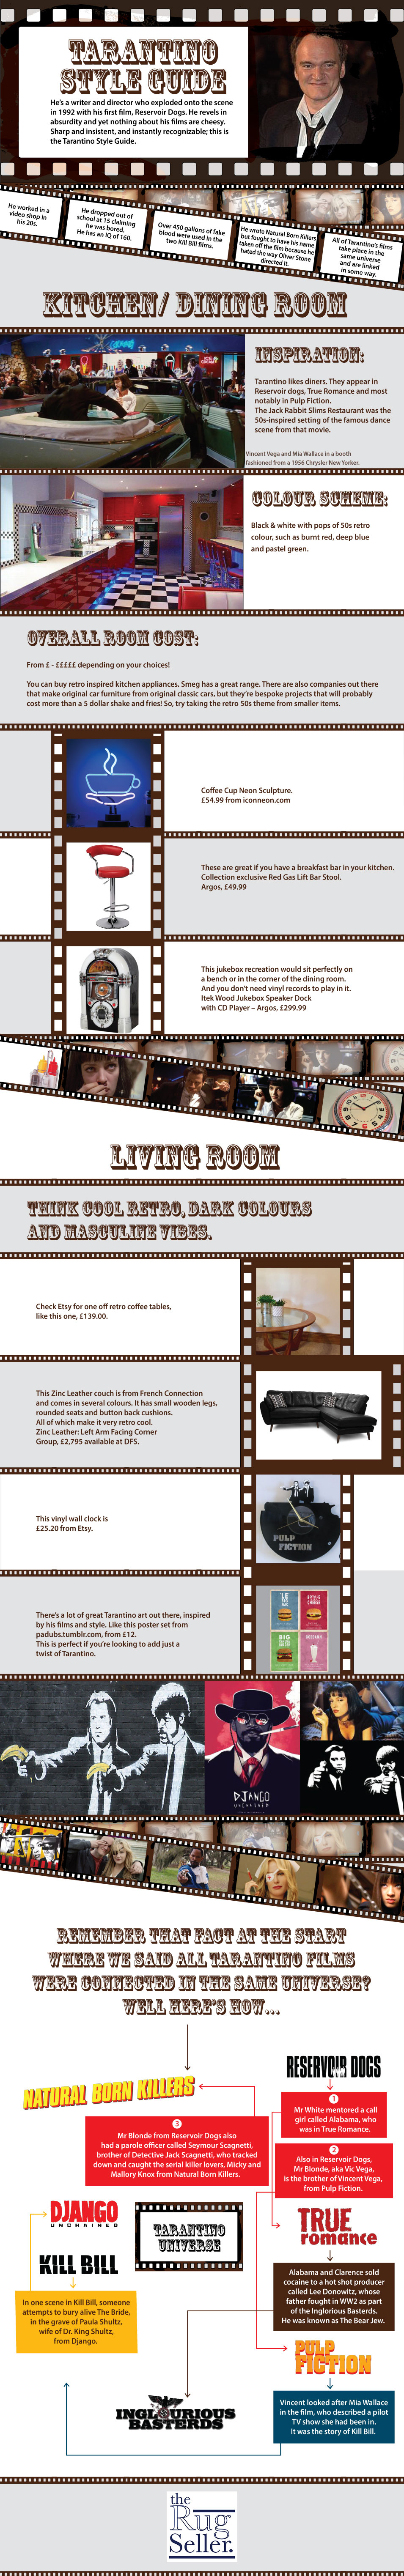 The tarantino home style guide infographic techno faq for Home style guide